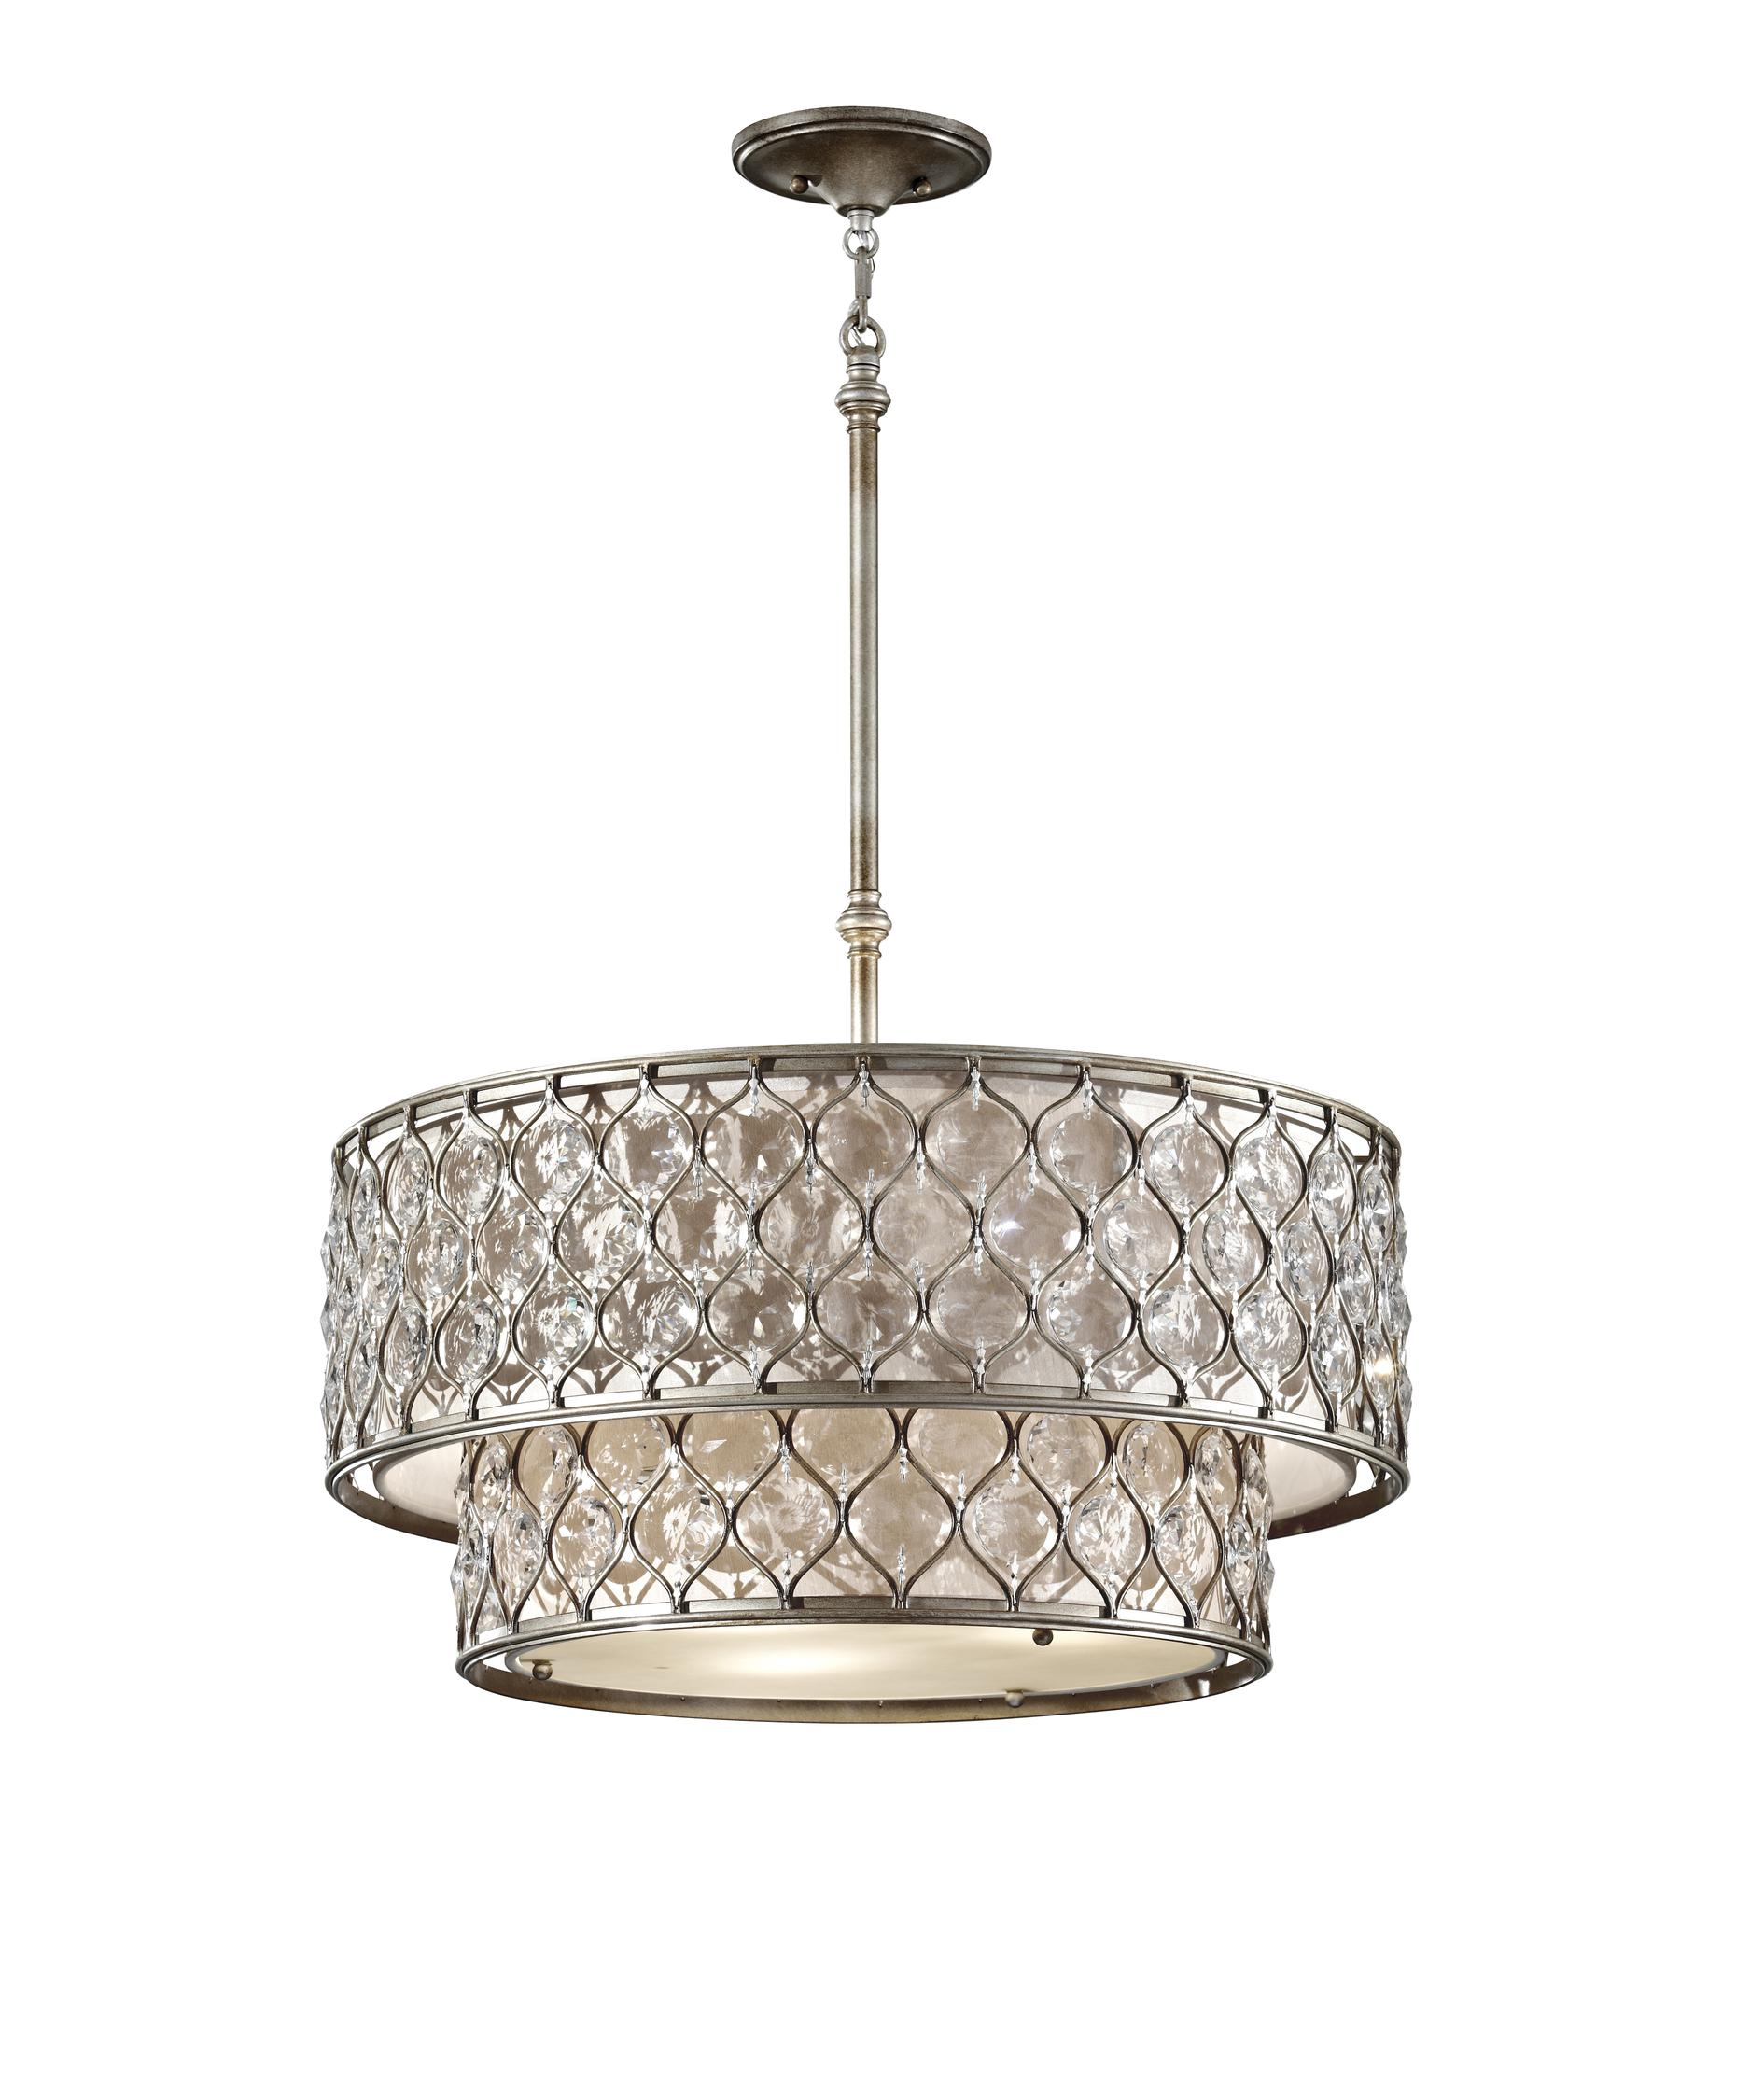 Murray Feiss F2707 6 Lucia 25 Inch Large Pendant Capitol  : f27076bus from www.1800lighting.com size 1875 x 2250 jpeg 247kB